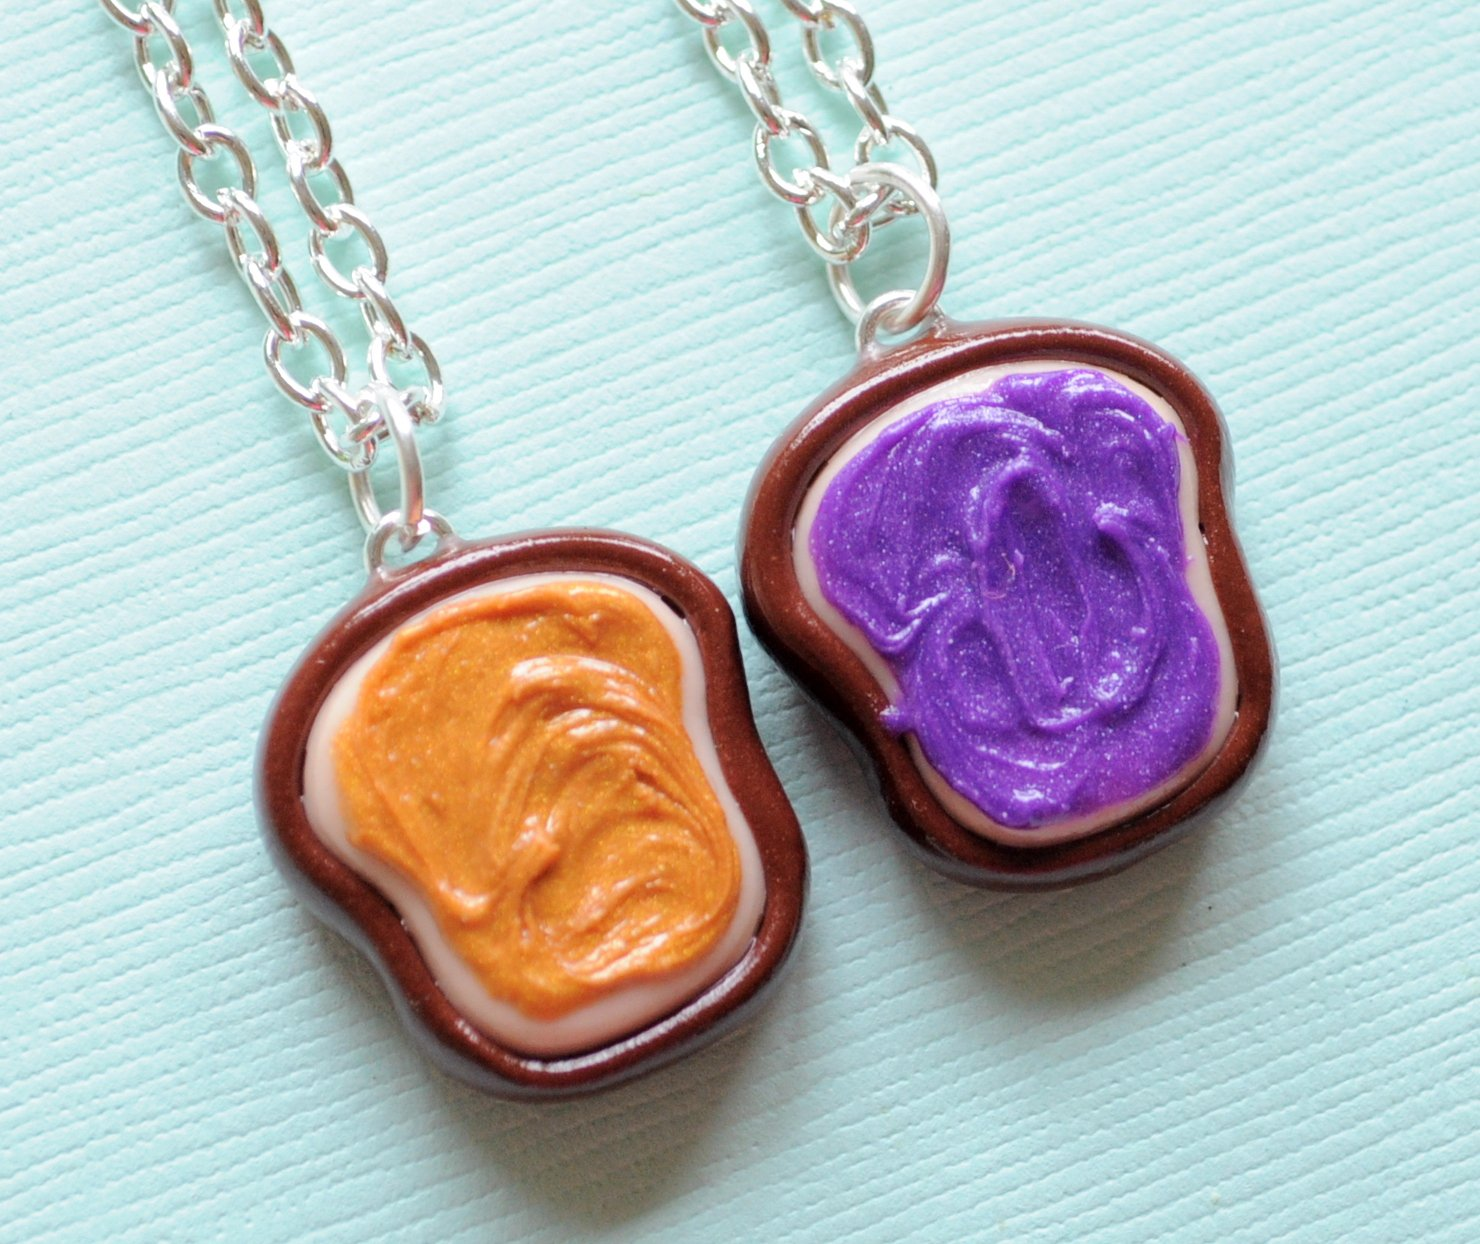 Realistic peanut butter and jelly best friend necklaces